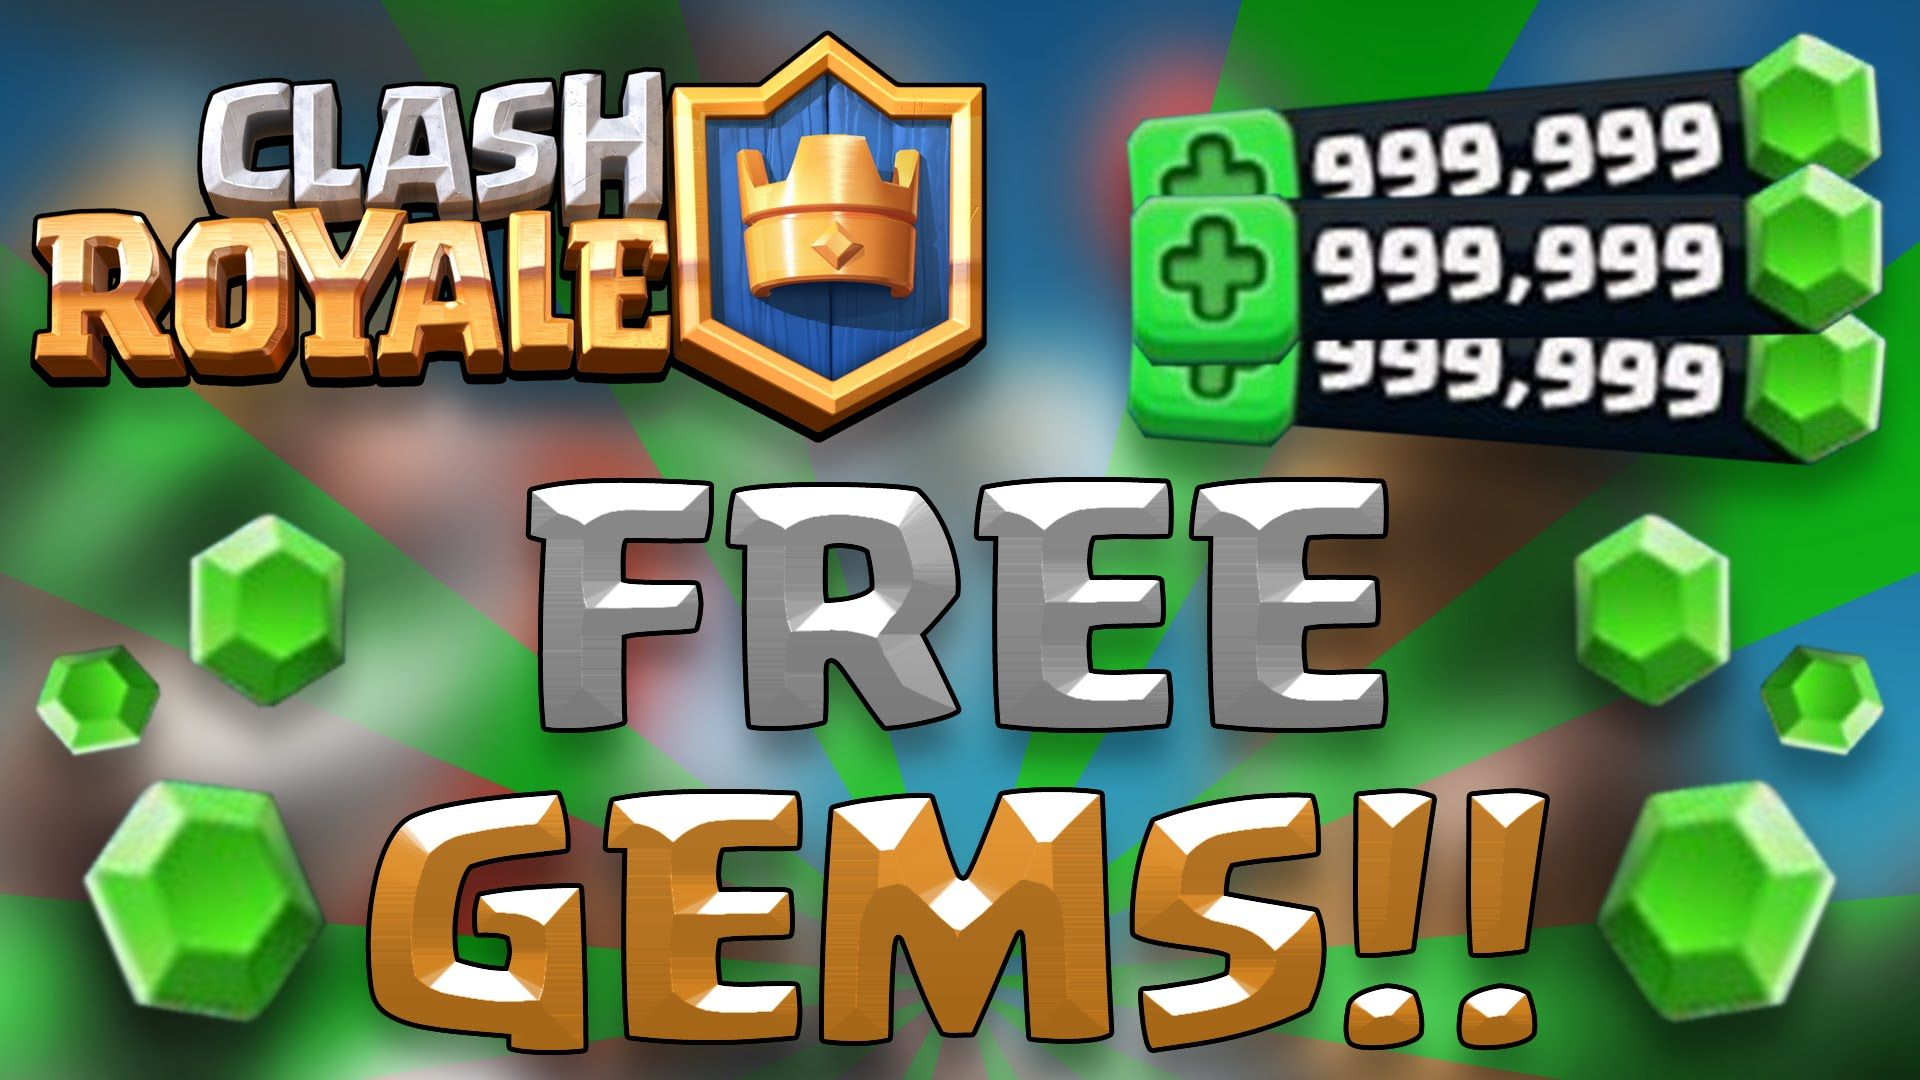 Get Clash Royale Unlimited Gems For Free! 100% Working [October 2020]